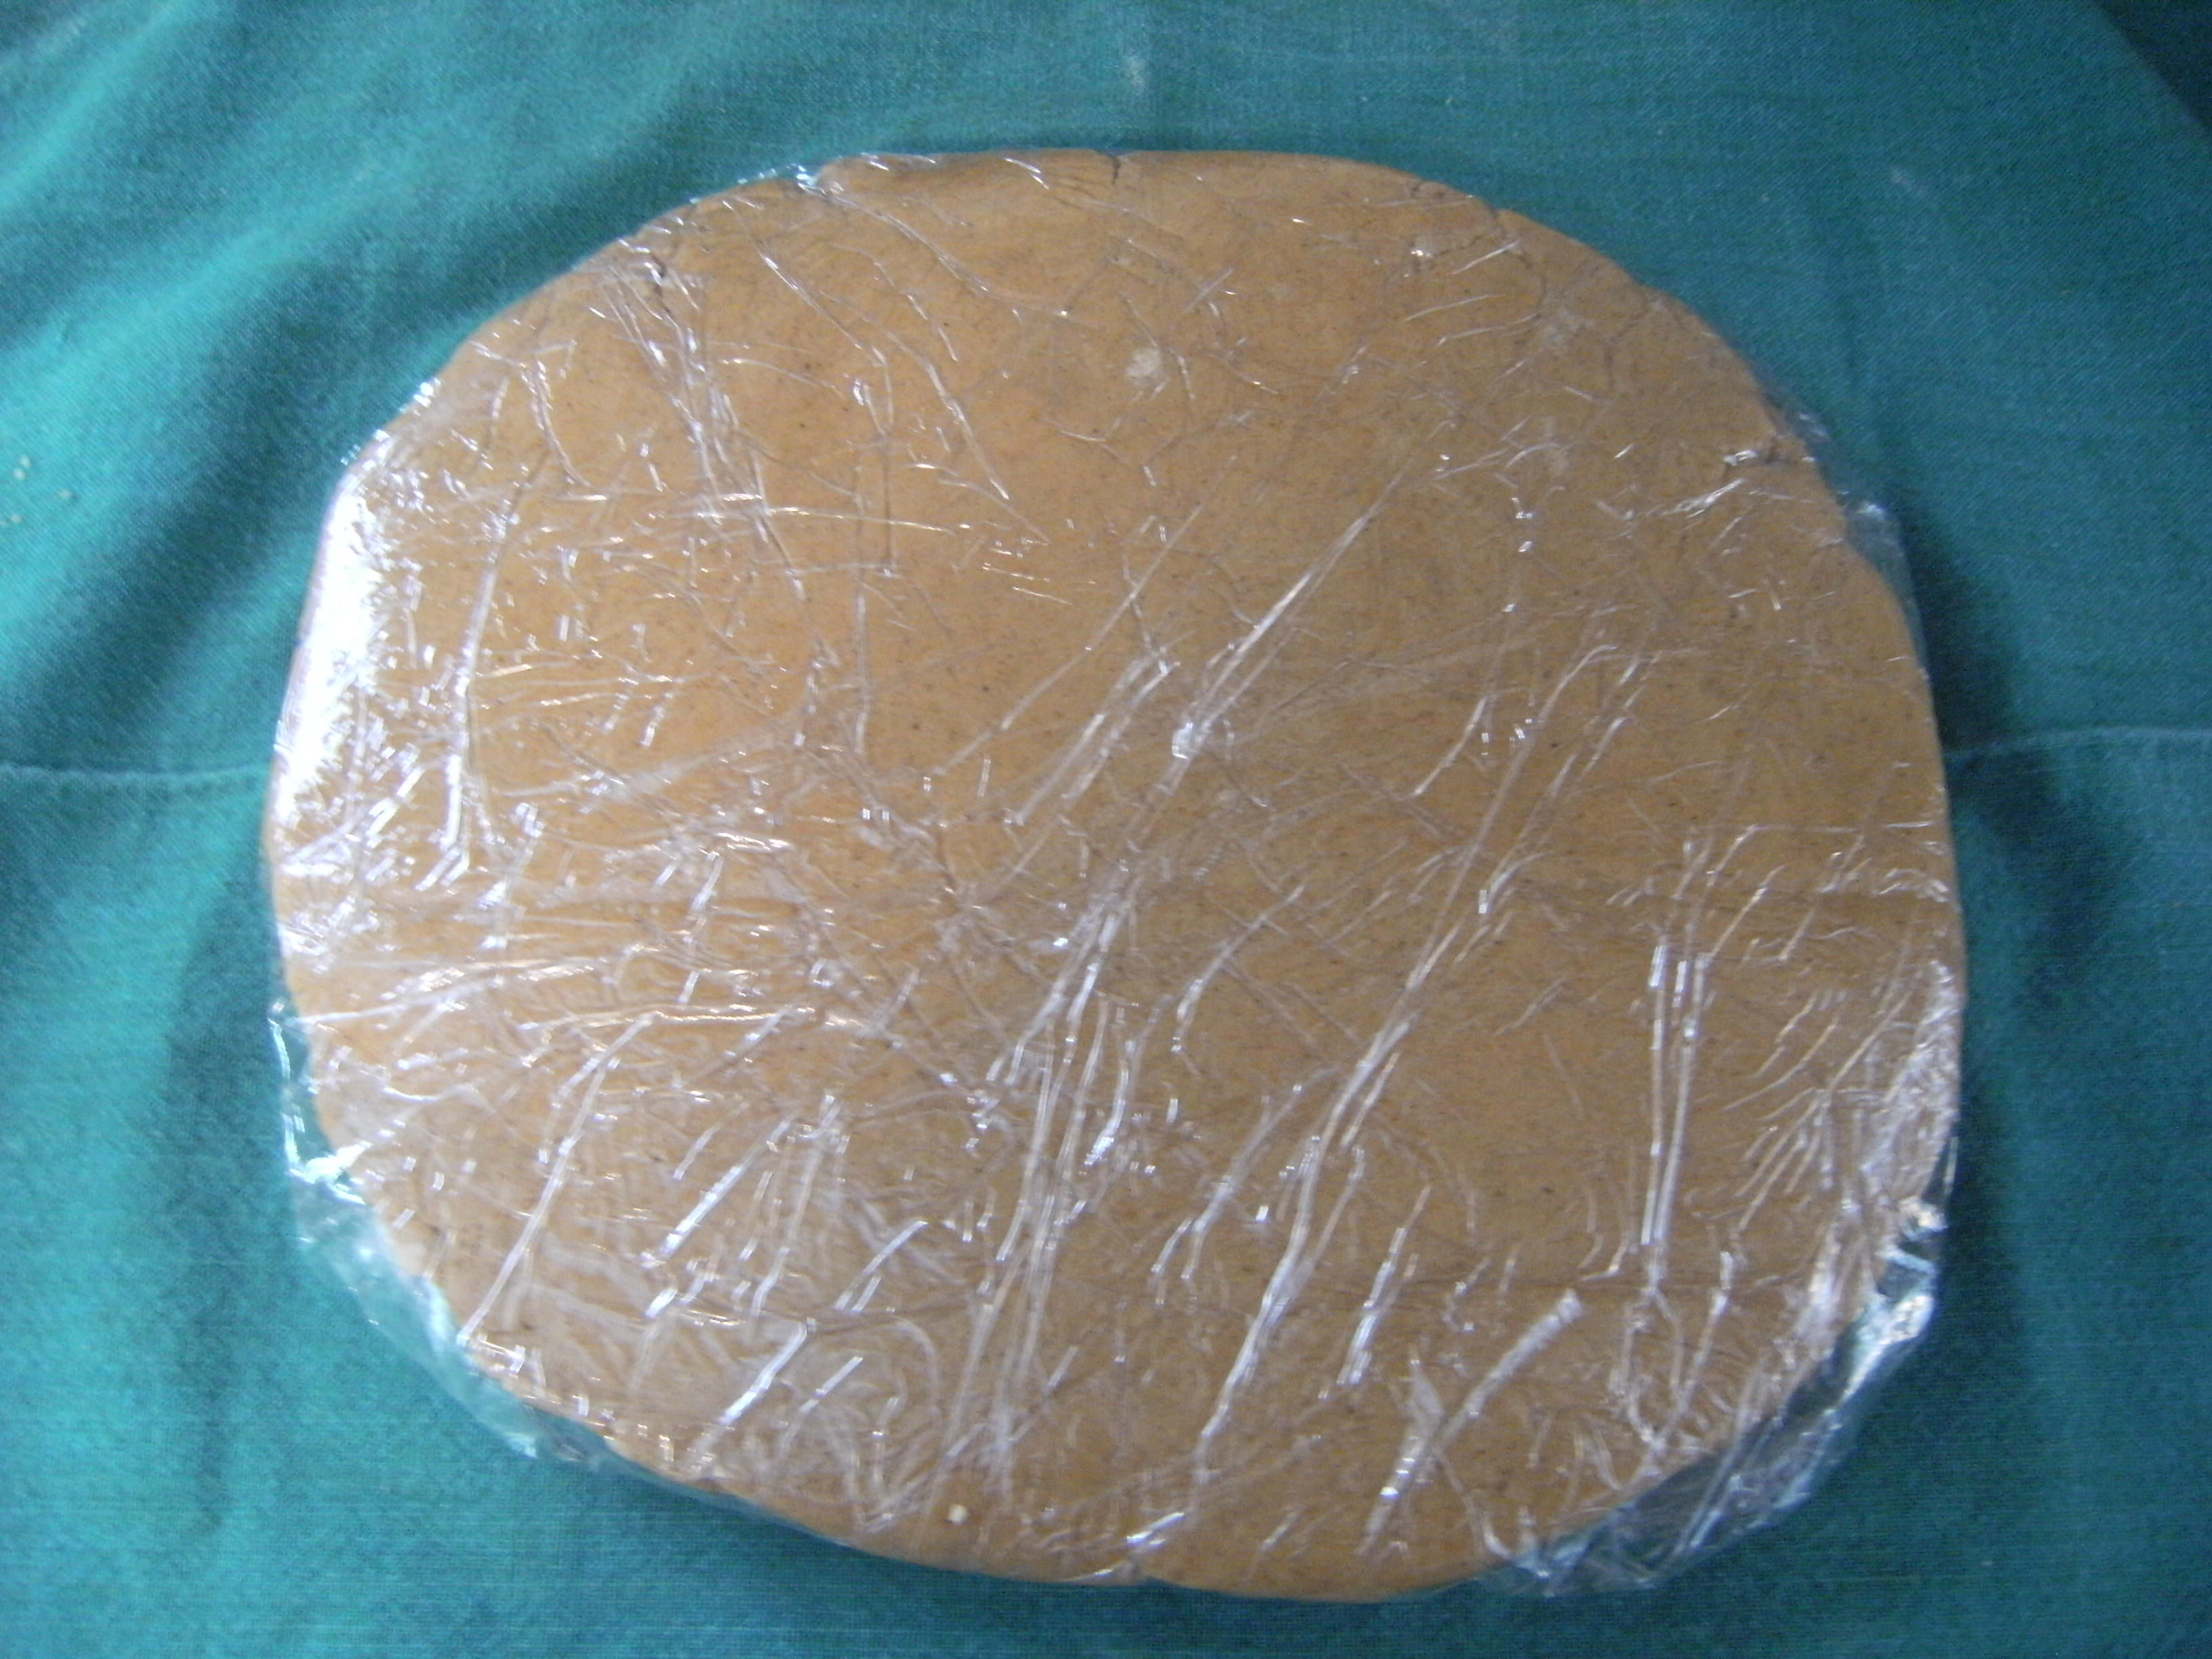 A disc of pfeffernusse cookie dough